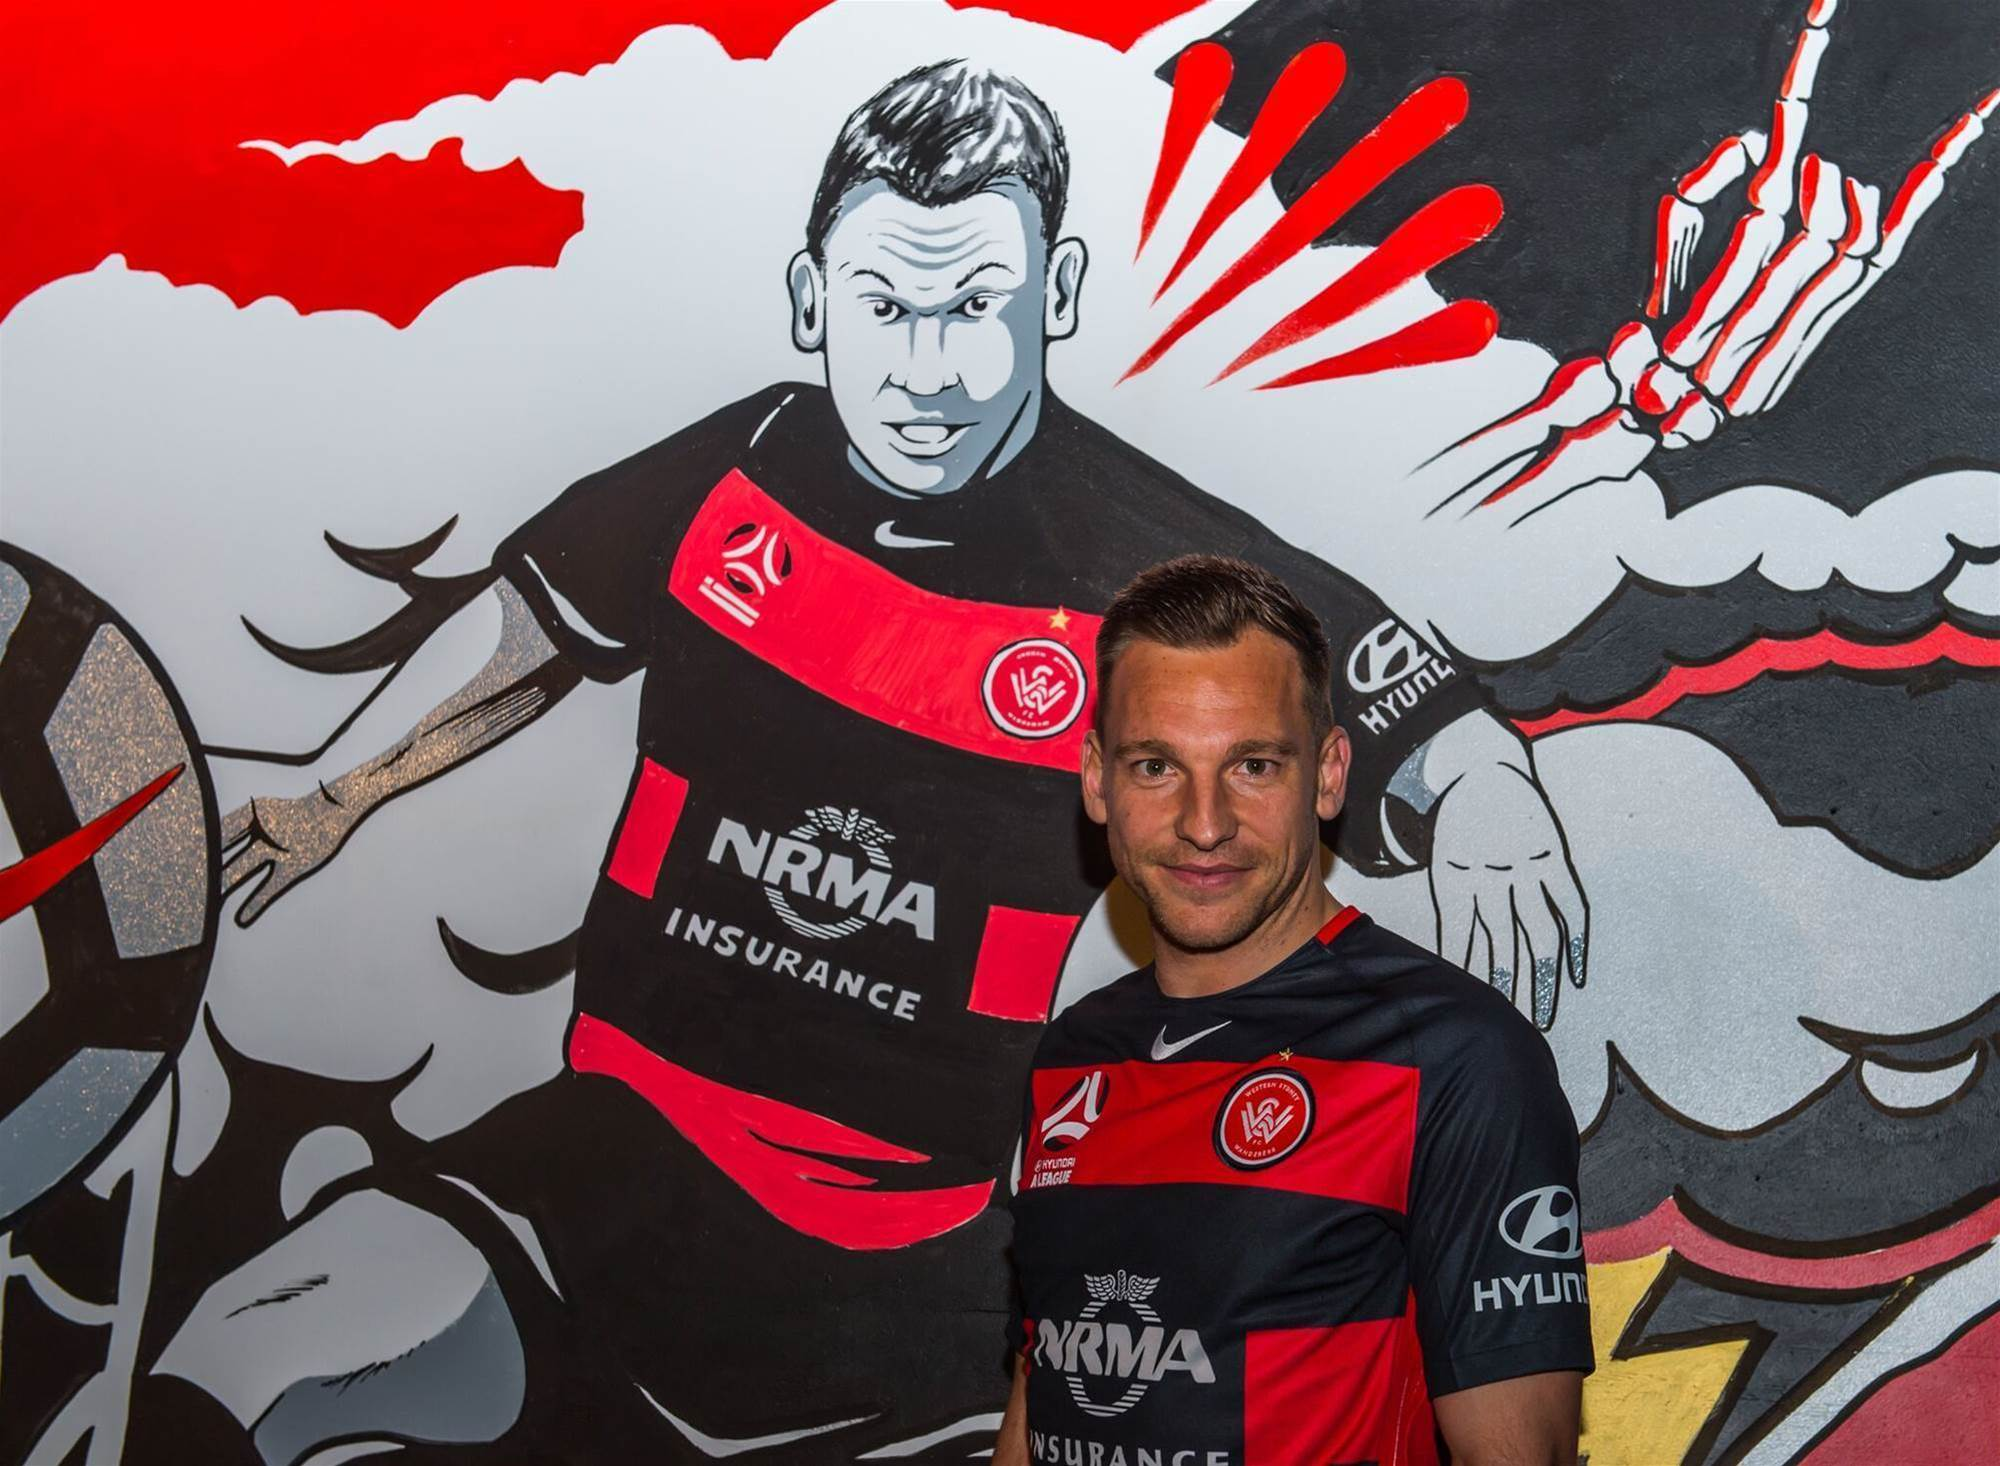 Gallery: Wanderers unveil new kit